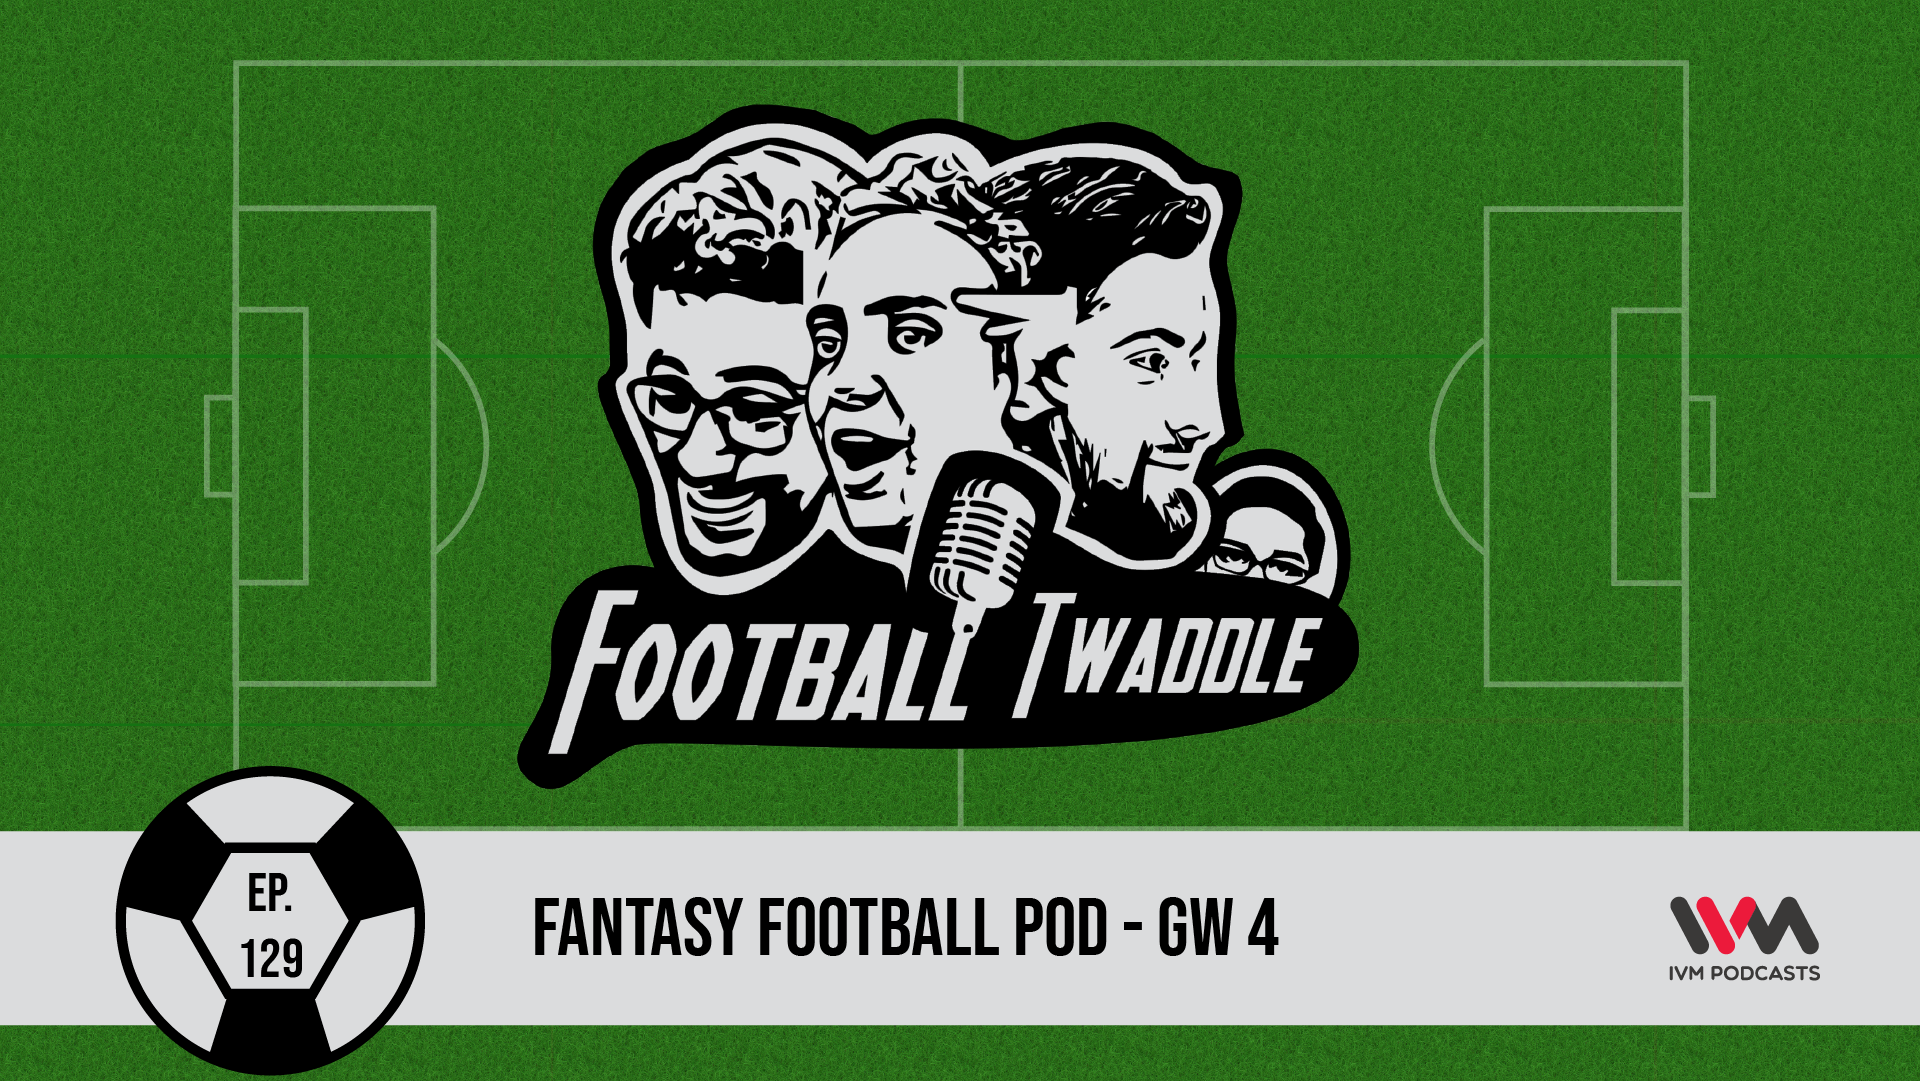 FootballTwaddleEpisode129.png